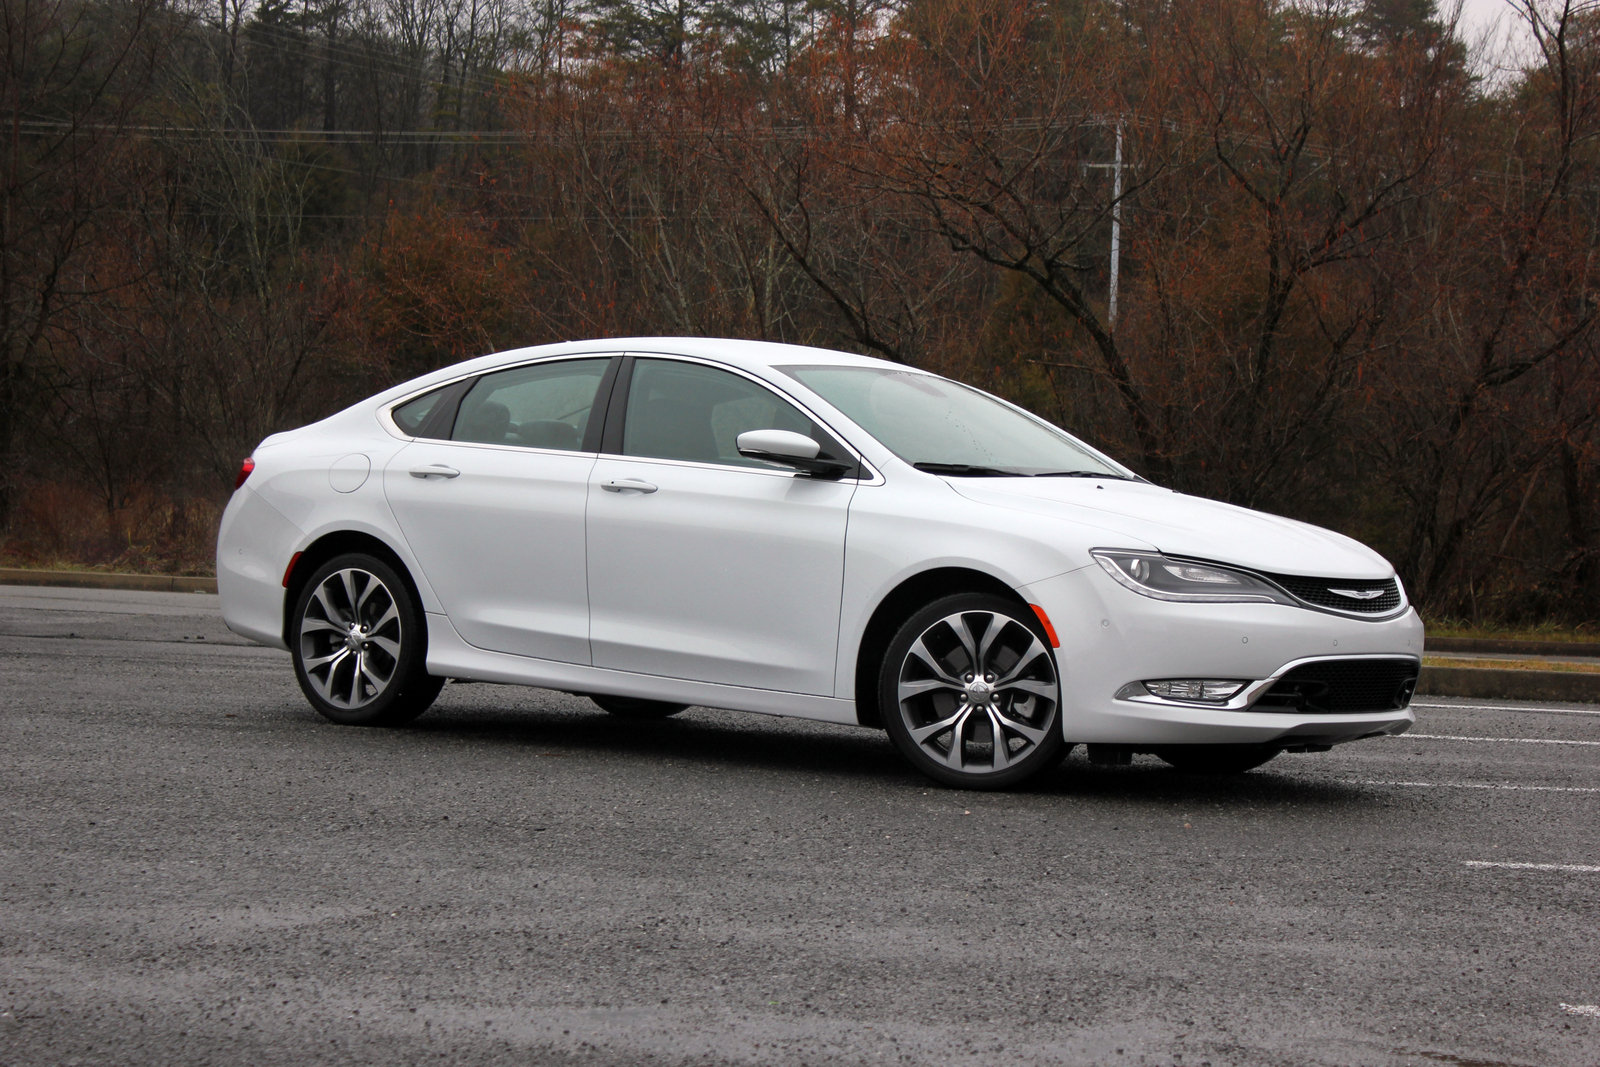 2015 chrysler 200c driven picture 608428 car review top speed. Black Bedroom Furniture Sets. Home Design Ideas